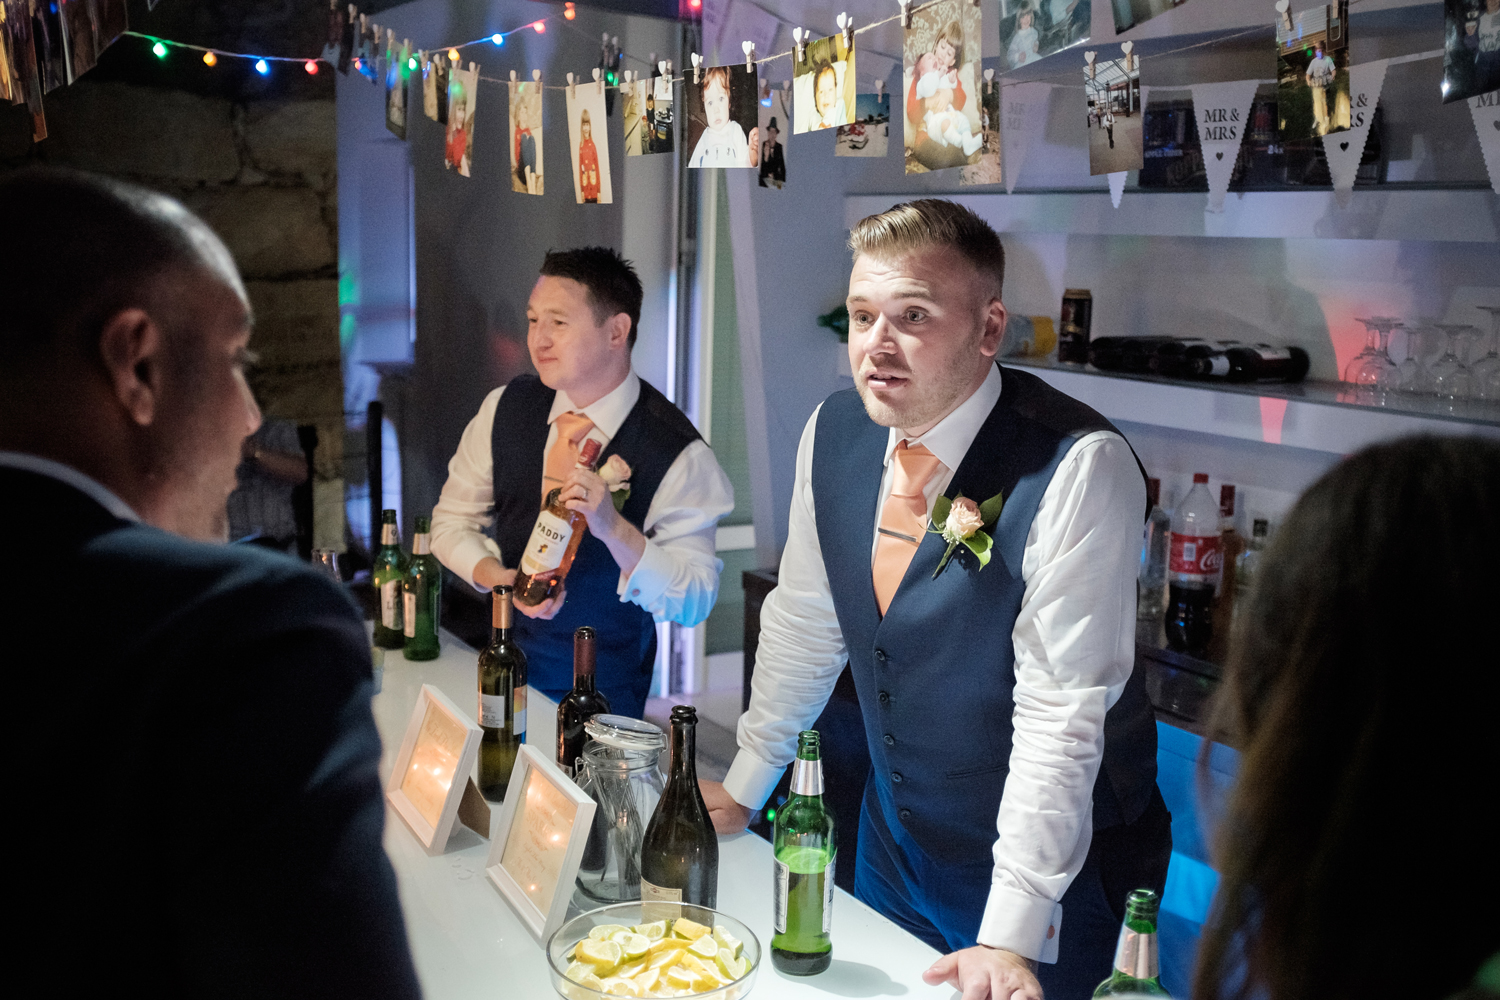 Self service for drinks at wedding